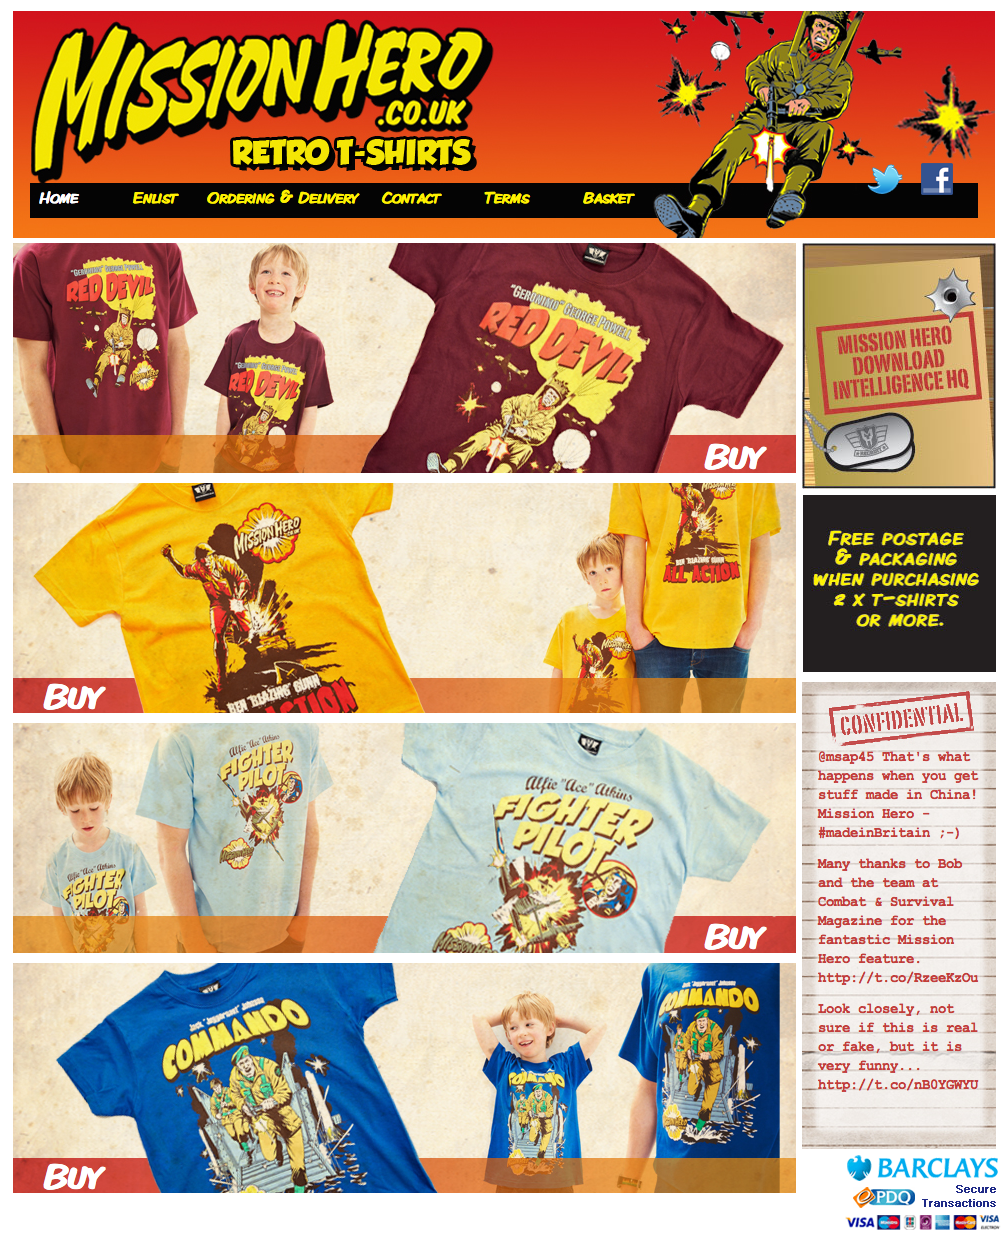 mission hero website for retro army tshirts